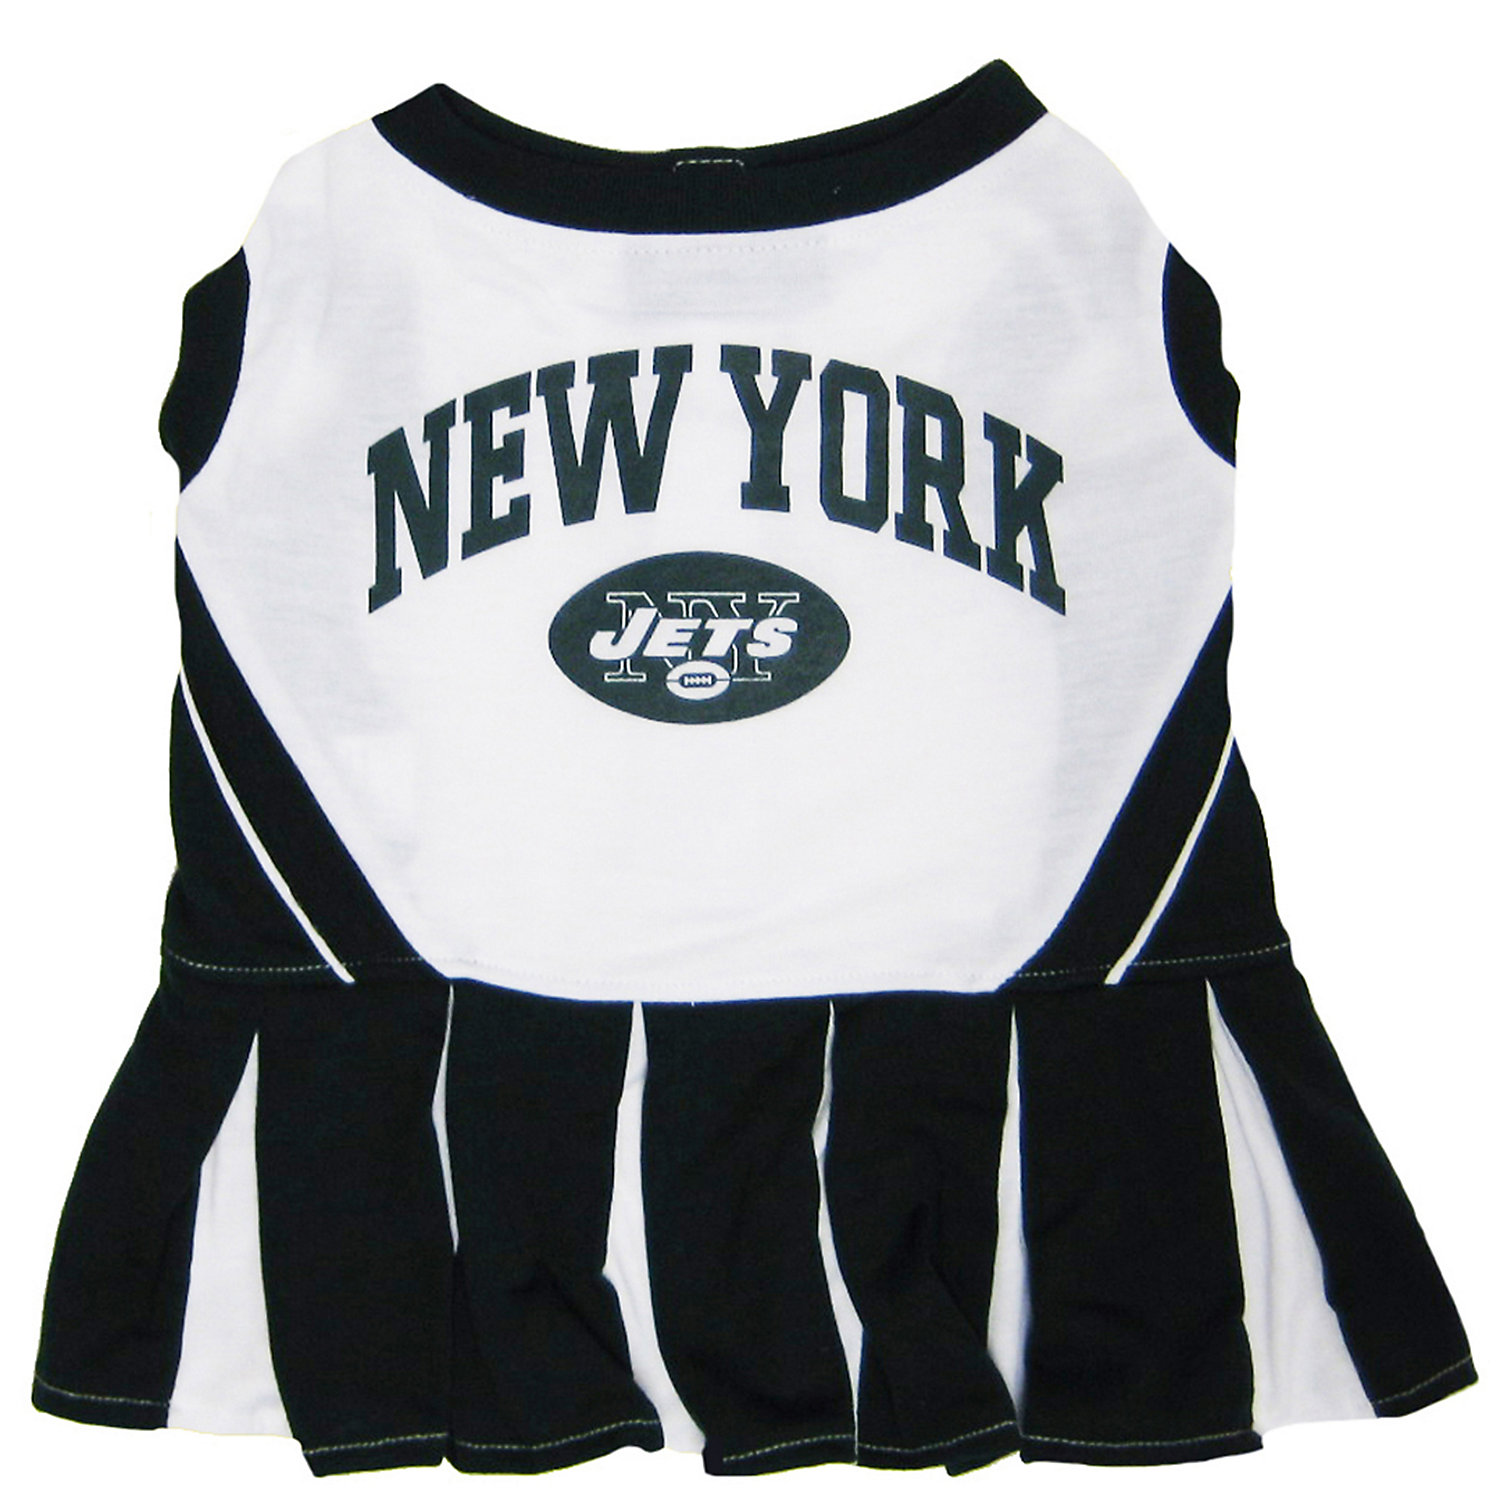 Pets First New York Jets Nfl Cheerleader Outfit Extra Small X Small Green